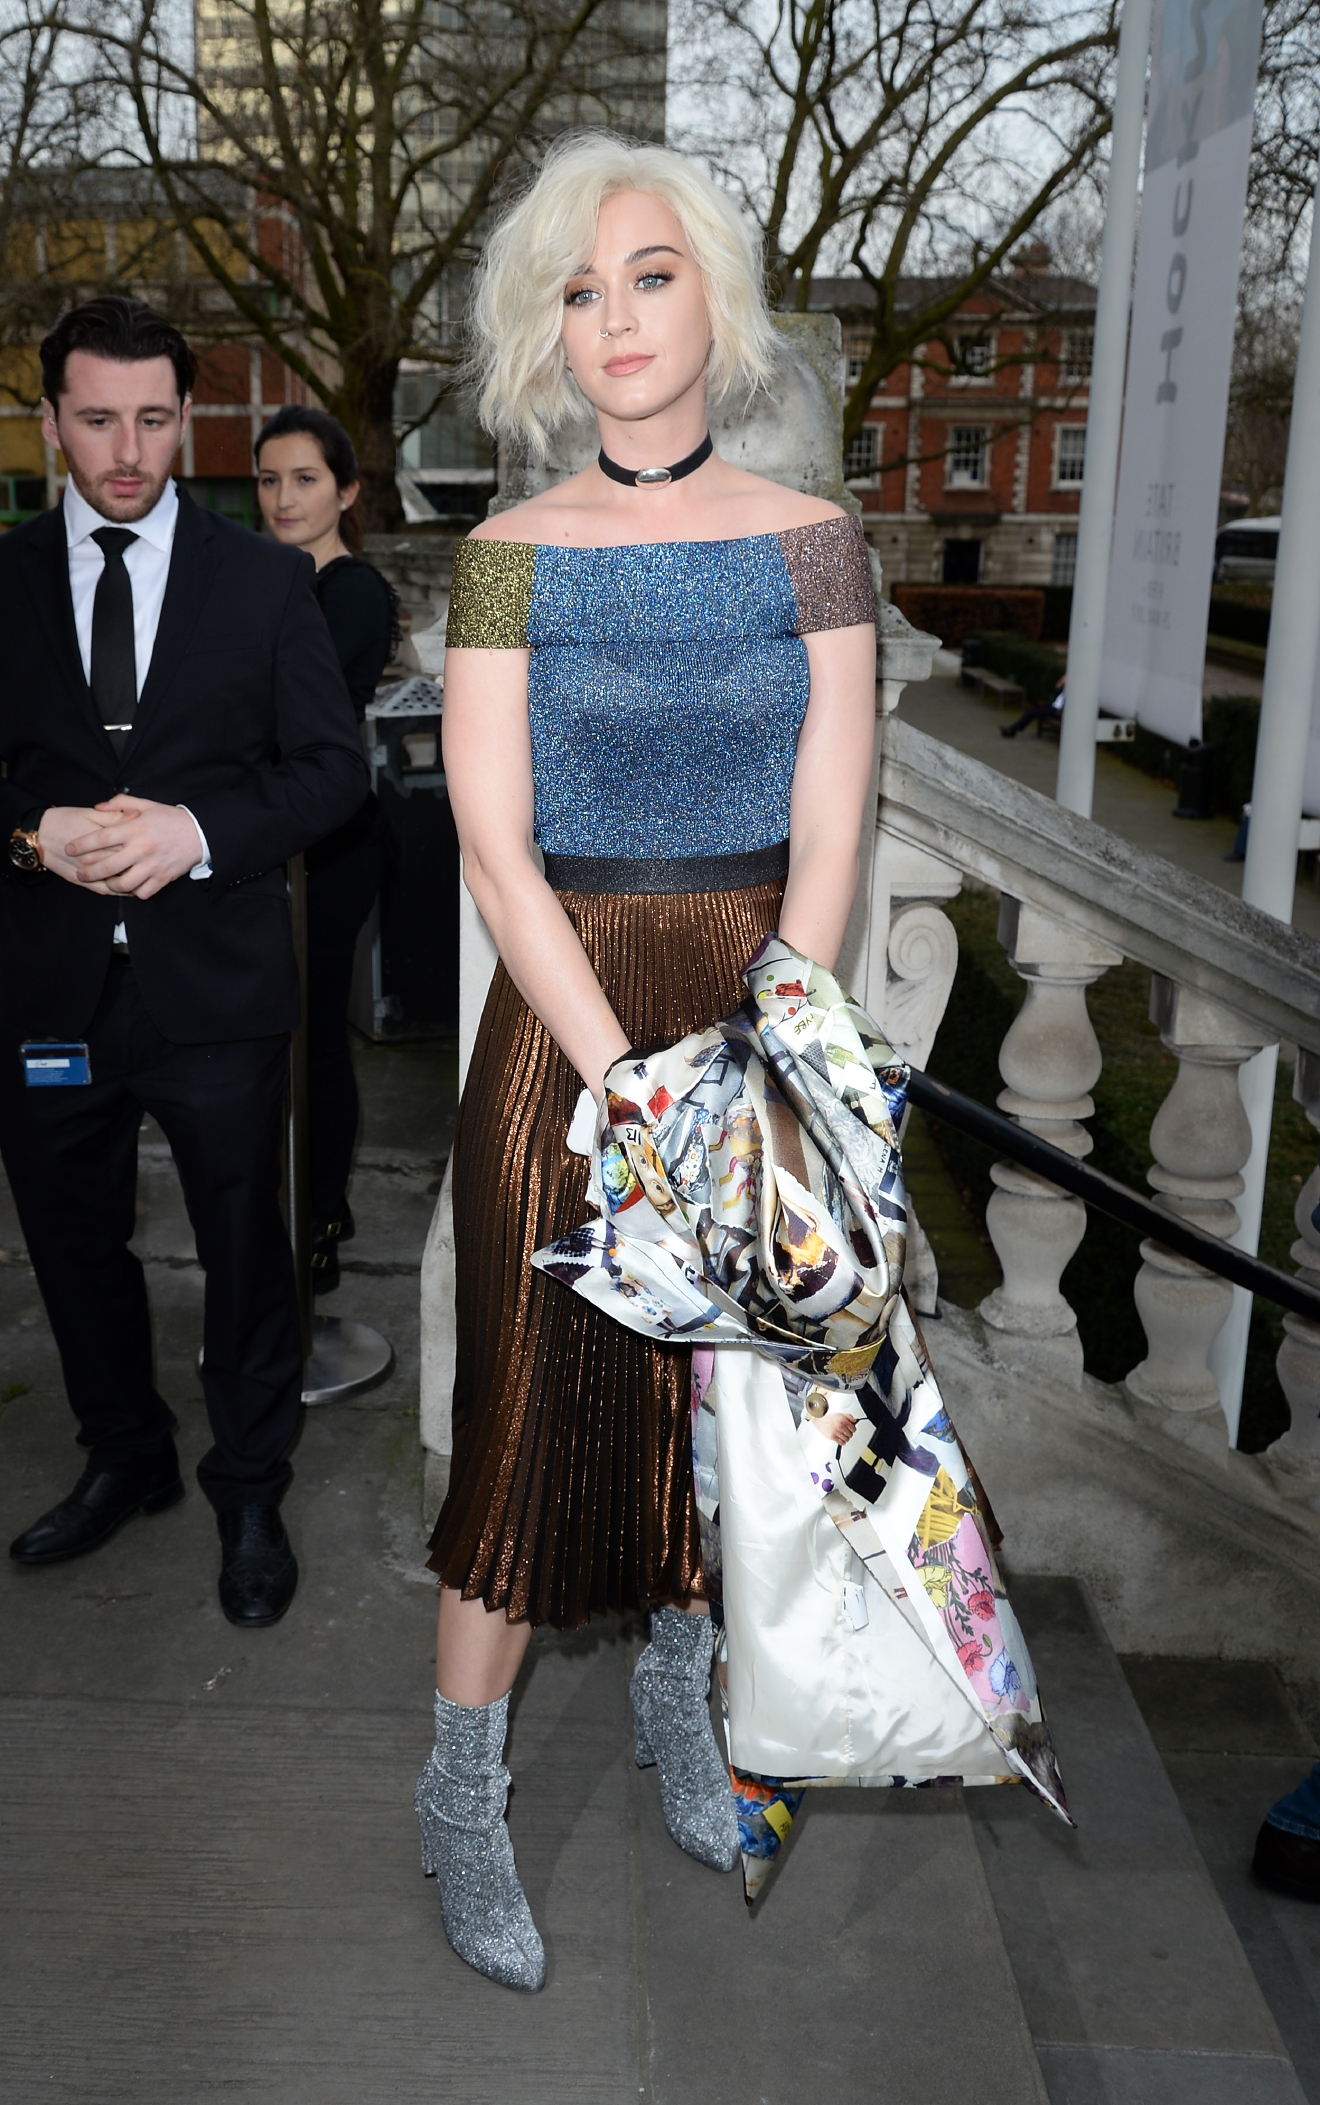 London Fashion Week 2017 - Christopher Kane - Outside Arrivals  Featuring: Katy Perry Where: London, United Kingdom When: 20 Feb 2017 Credit: Tony Oudot/WENN